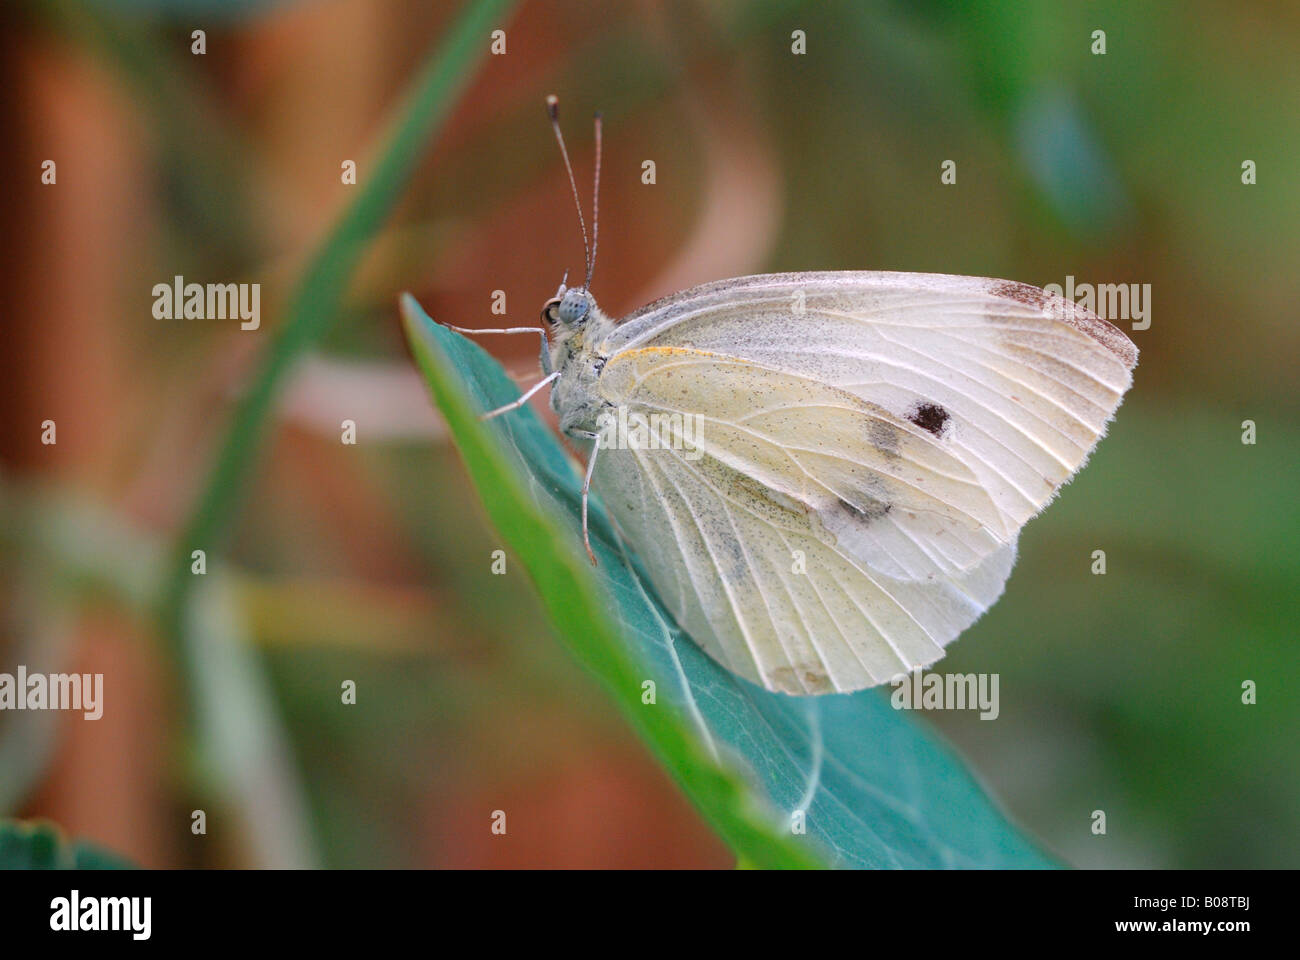 Large White or Cabbage White butterfly (Pieris brassicae) - Stock Image